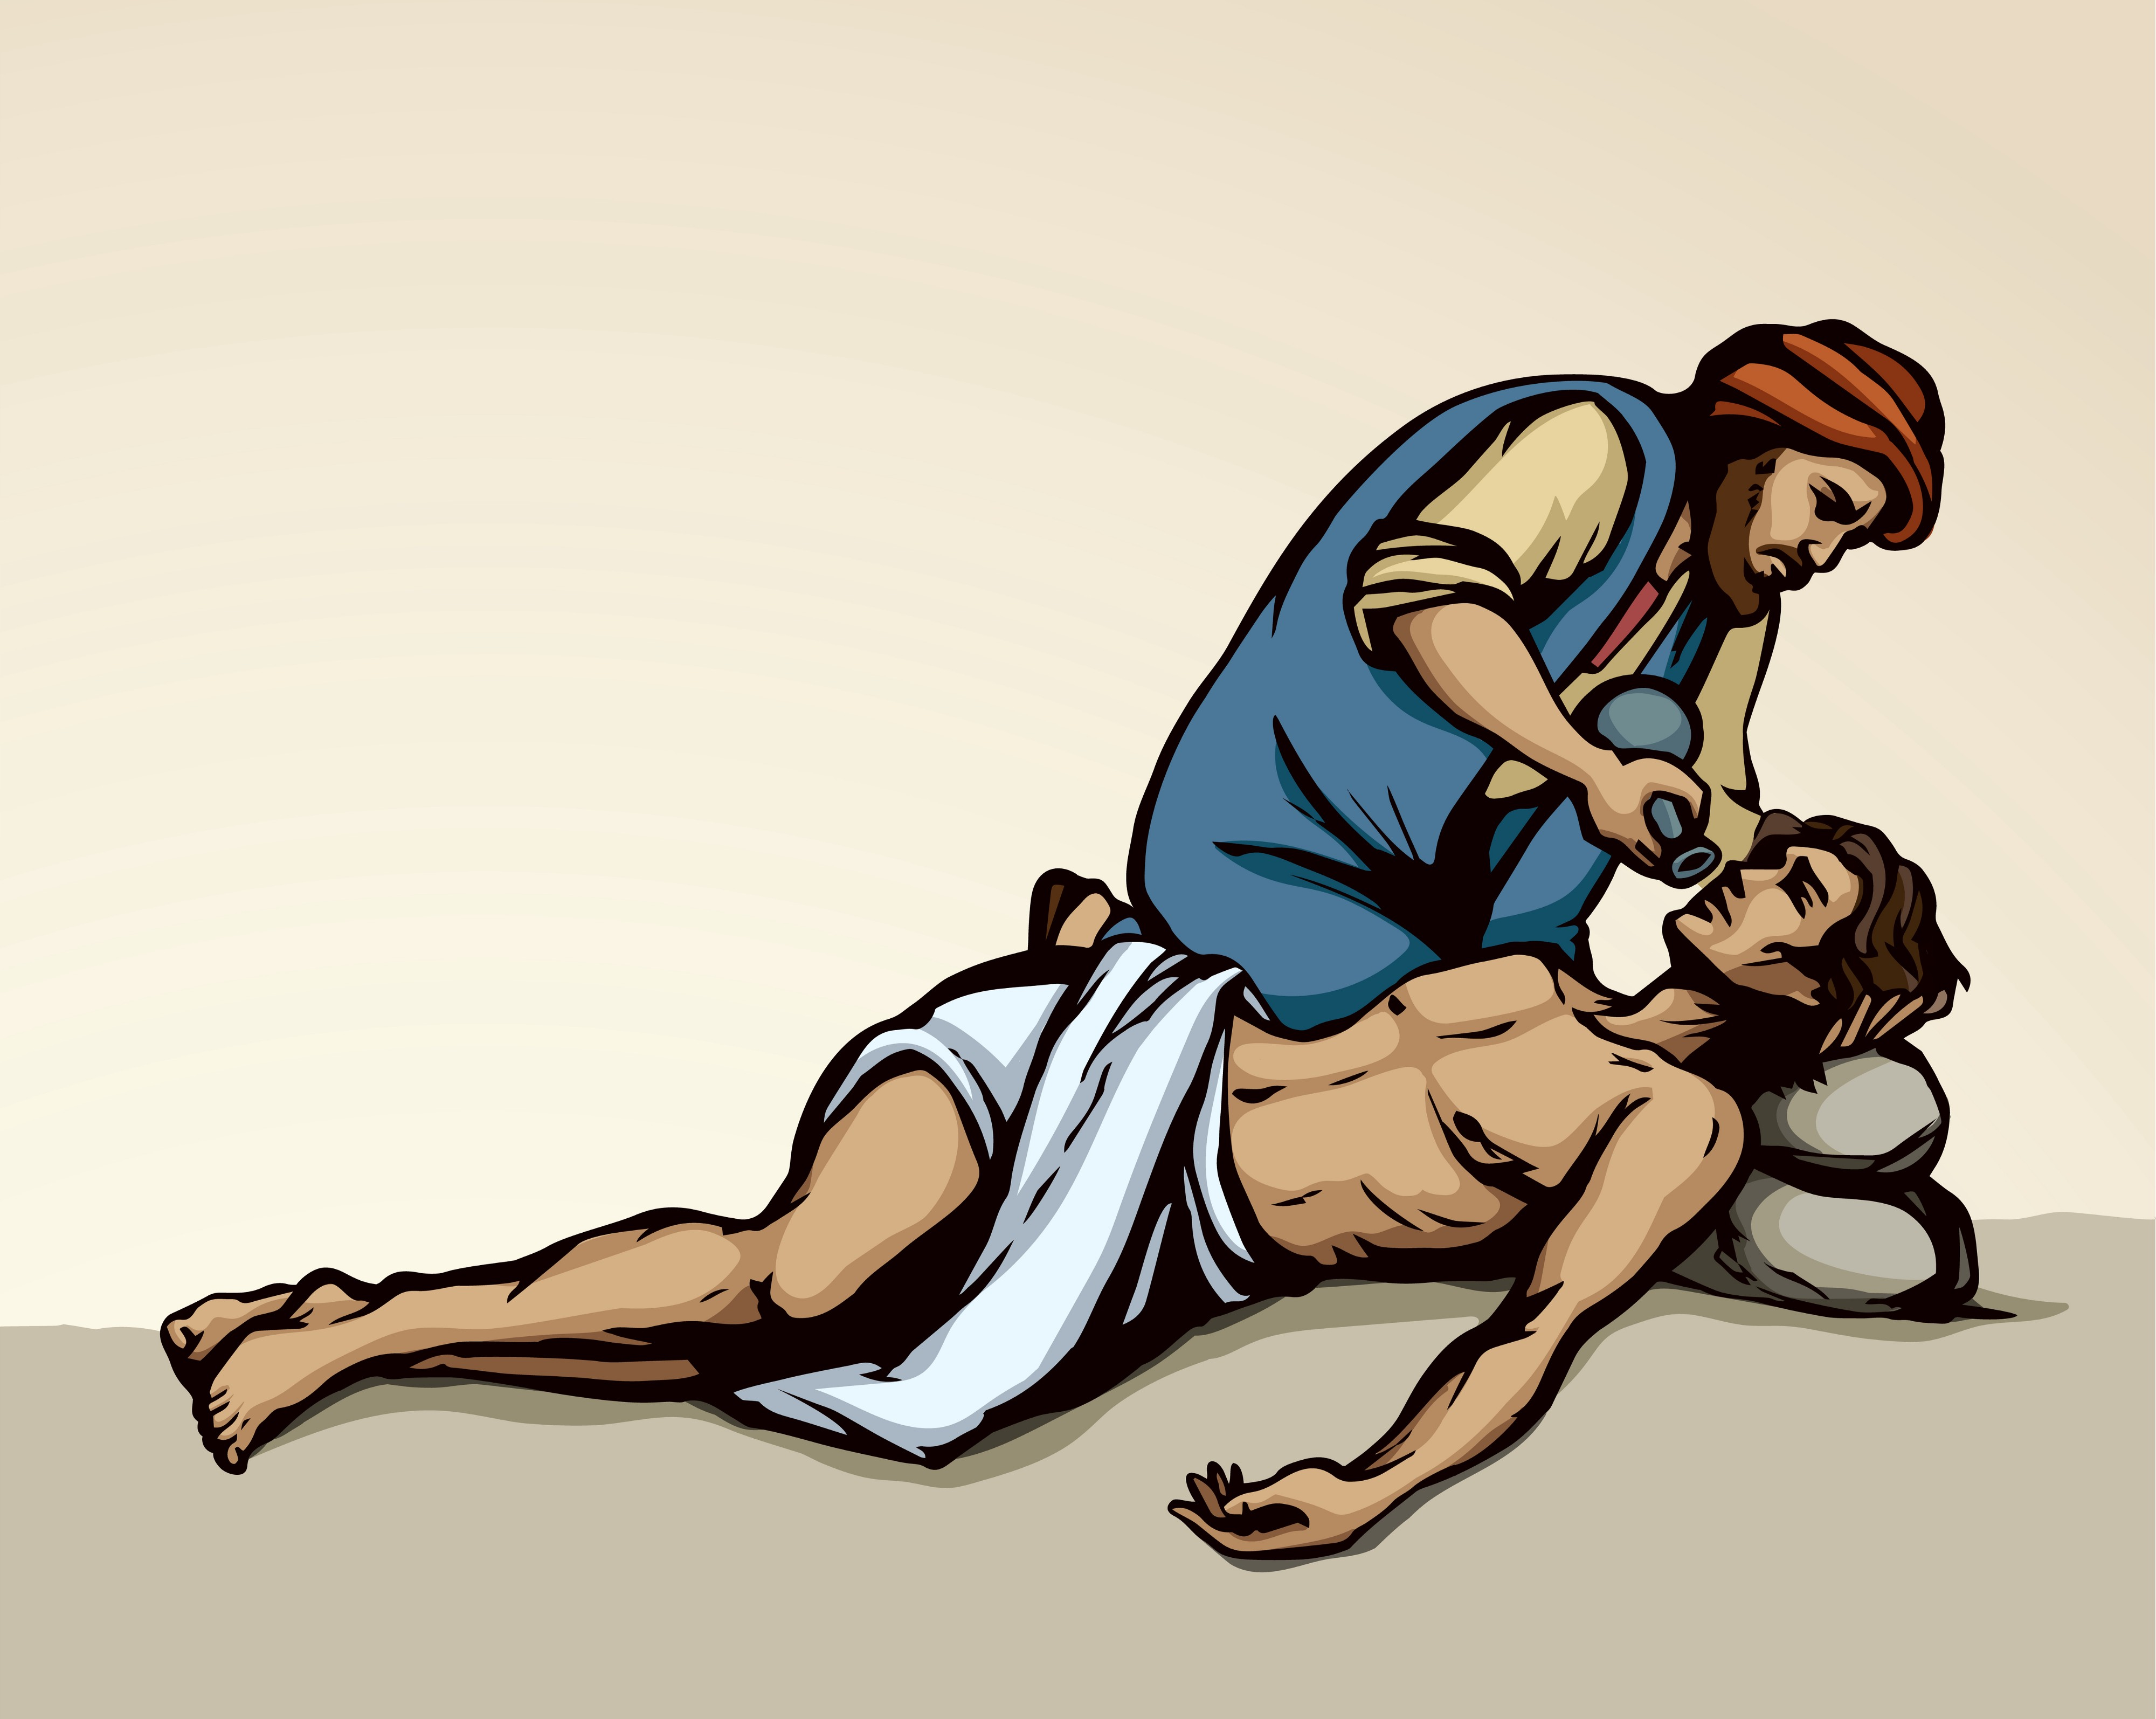 Drawing of the Good Samaritan offering drink to the man fallen at the hand of thieves. The bodies are draw with thick black lines. The man on the ground has a white cloth wrapped around his pelvic area, otherwise he is unclothed. His head is resting on two stacked rocks. The Samaritan, kneeling, is wearing a long blue vest-like garment over a flaxen-colored shirt. He has a russet beard and dull-red turban-like head gear. The background is plain with no detail, making the figures more striking.